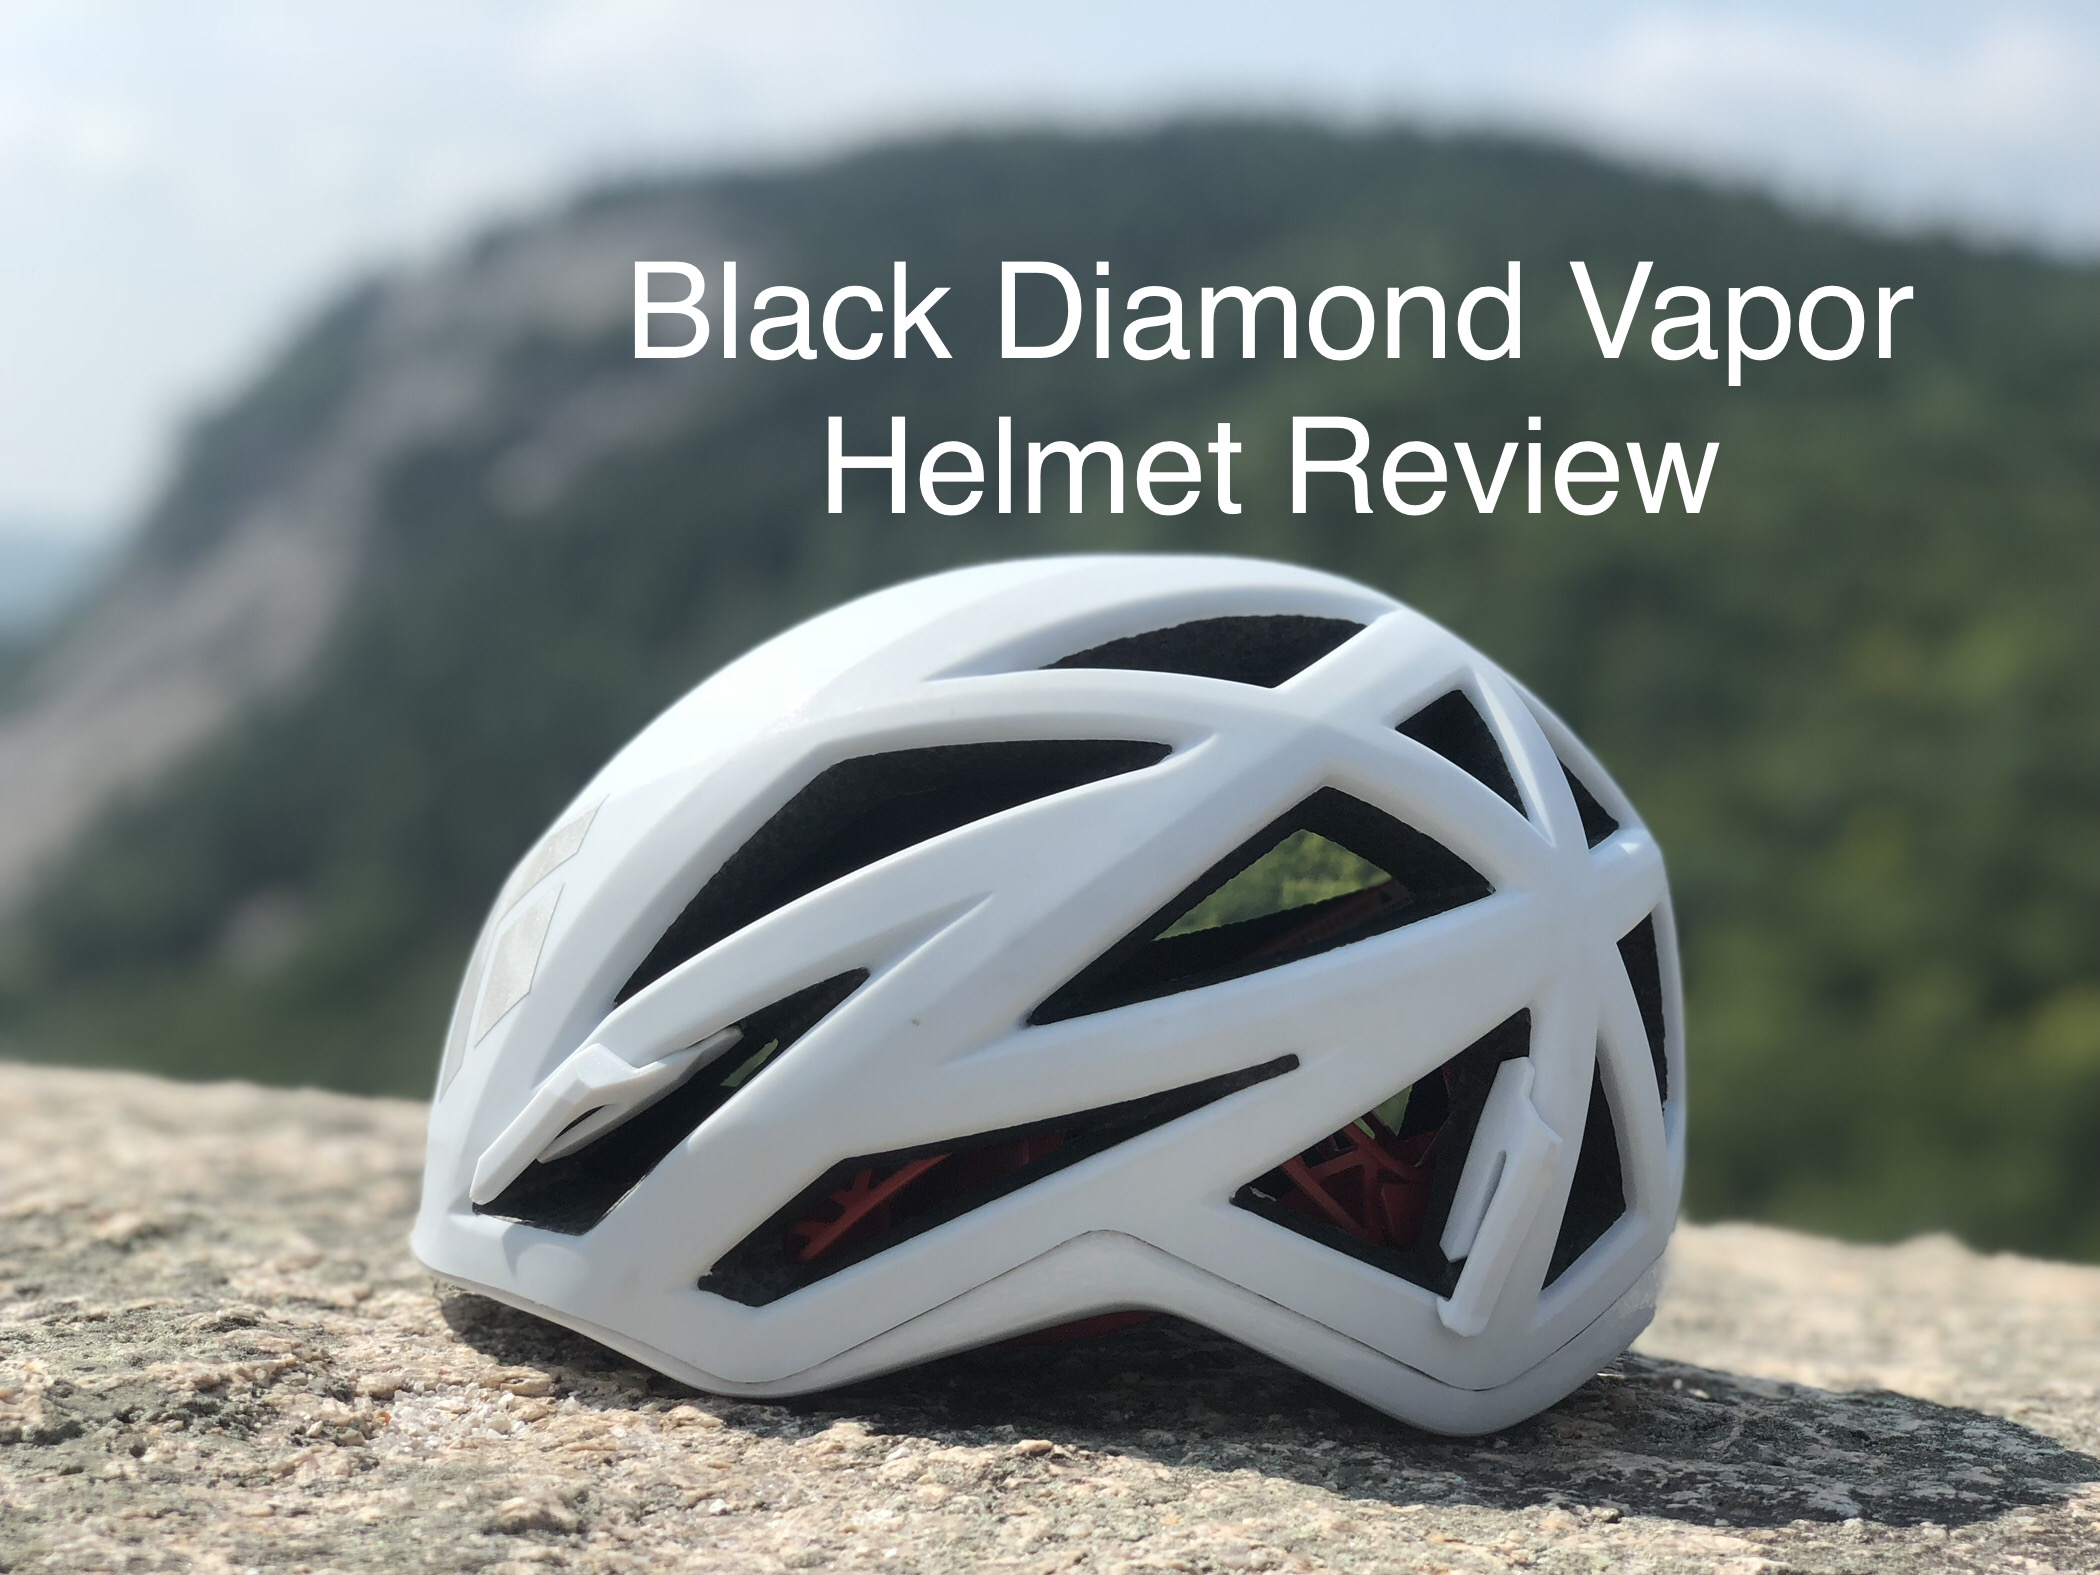 Black Diamond Vapor Helmet Review